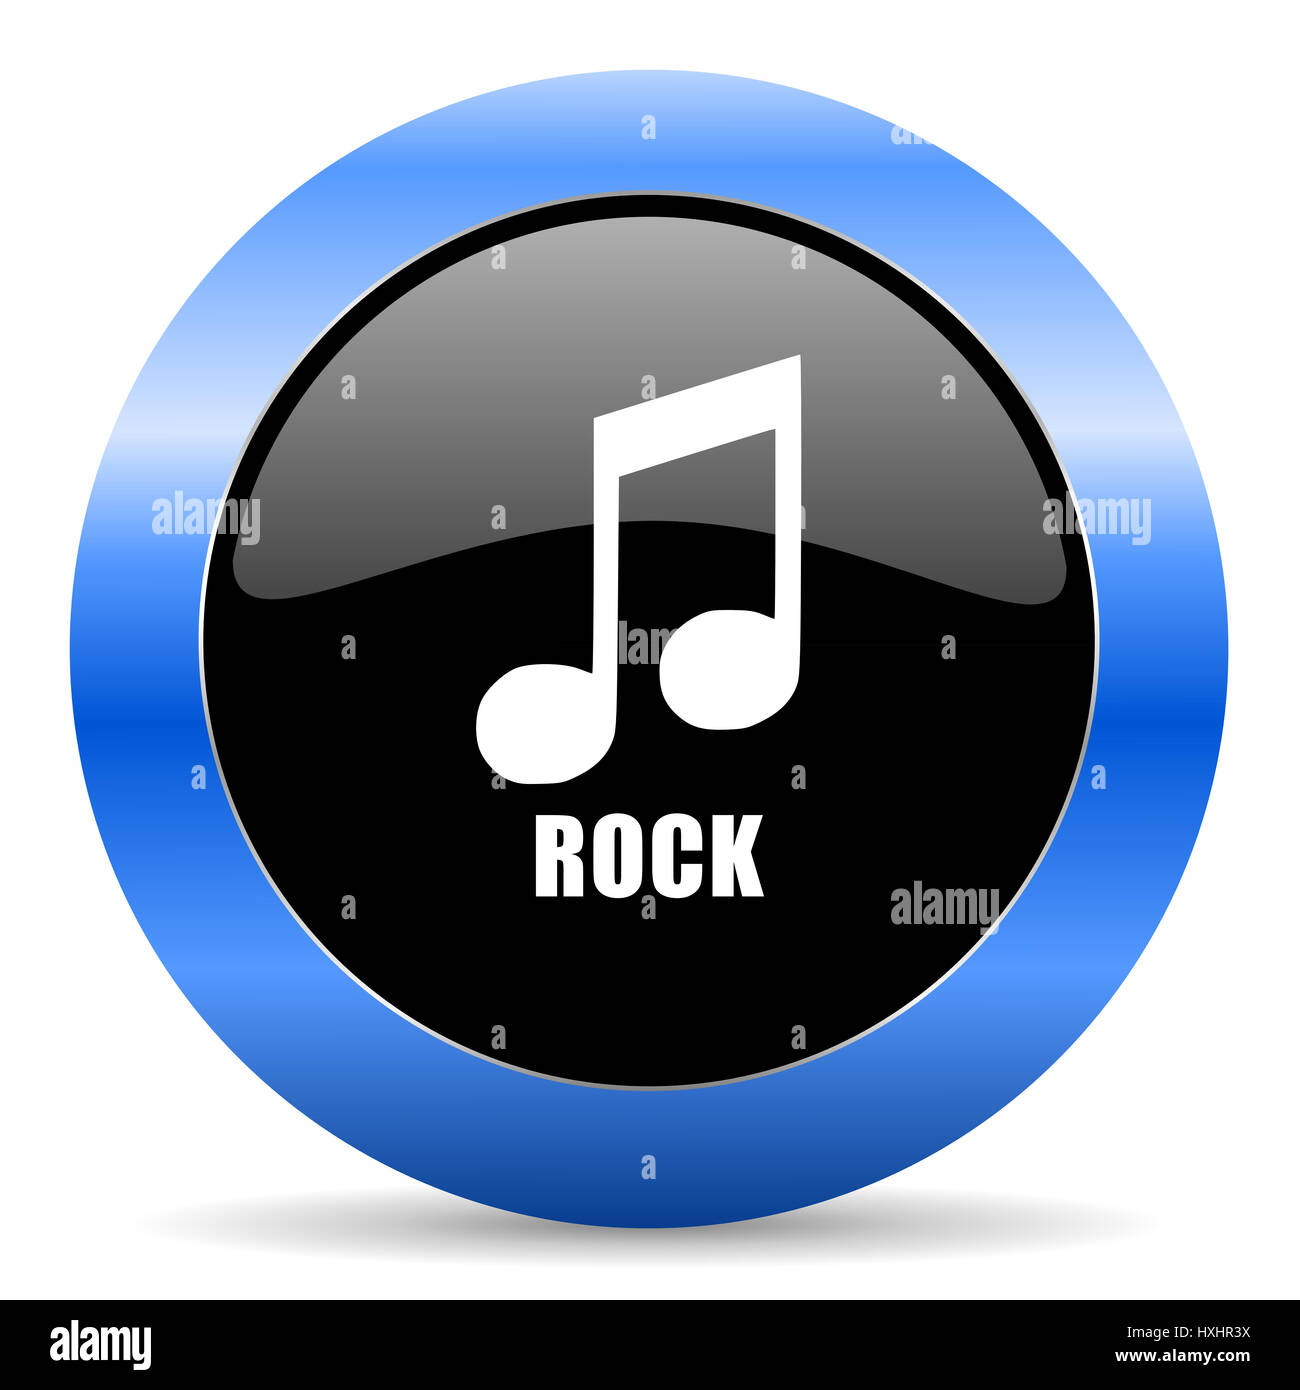 Rock music black and blue web design round internet icon with shadow on white background. - Stock Image